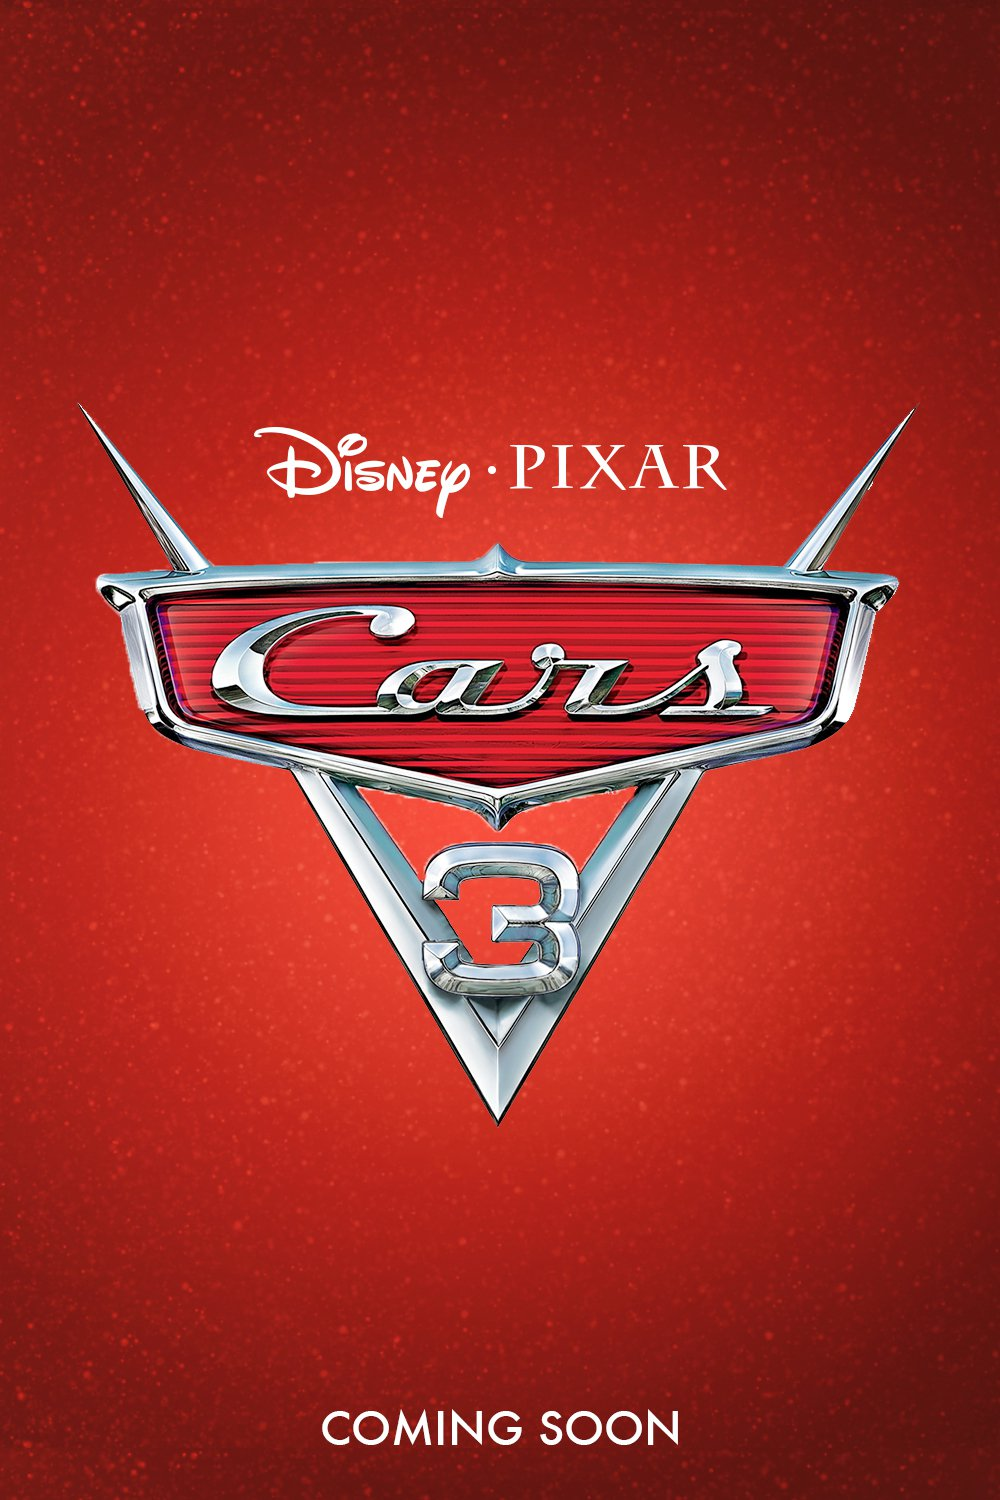 cars3-poster1